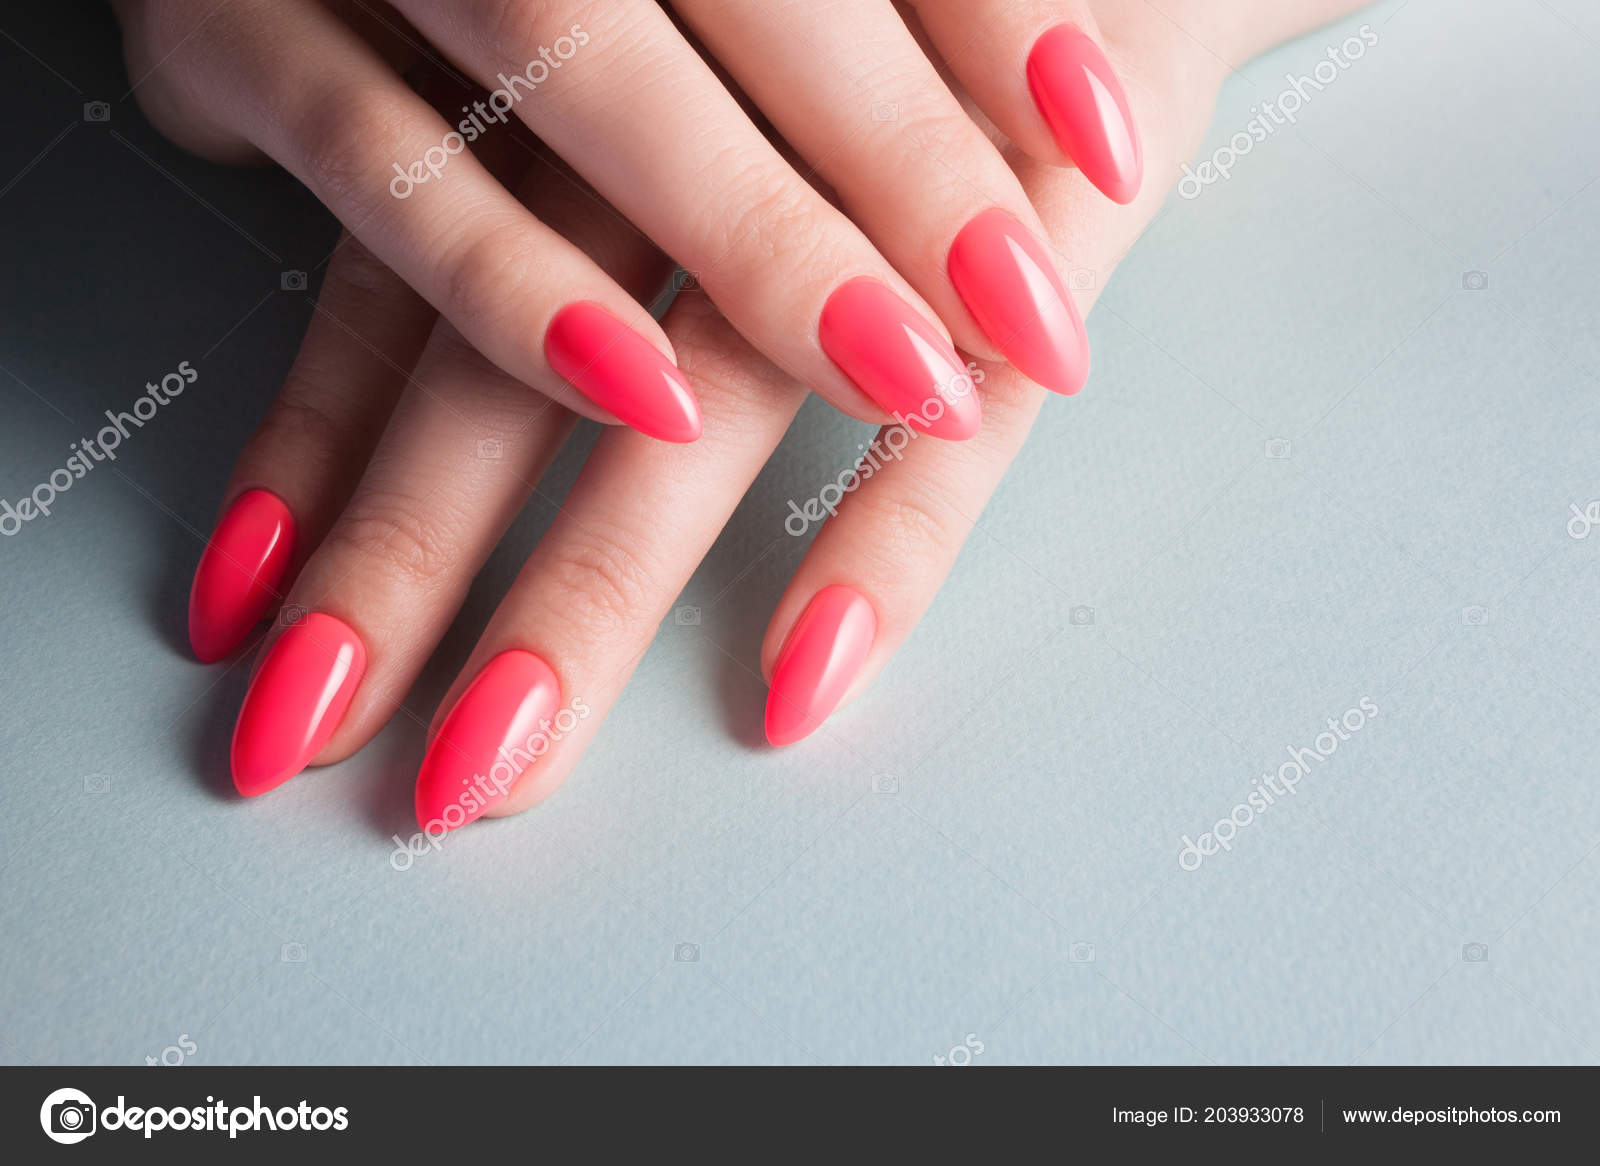 Women S Hands With Perfect Red Manicure Nail Polish Red Coral Color Blue Background Stock Photo C Kriscole 203933078